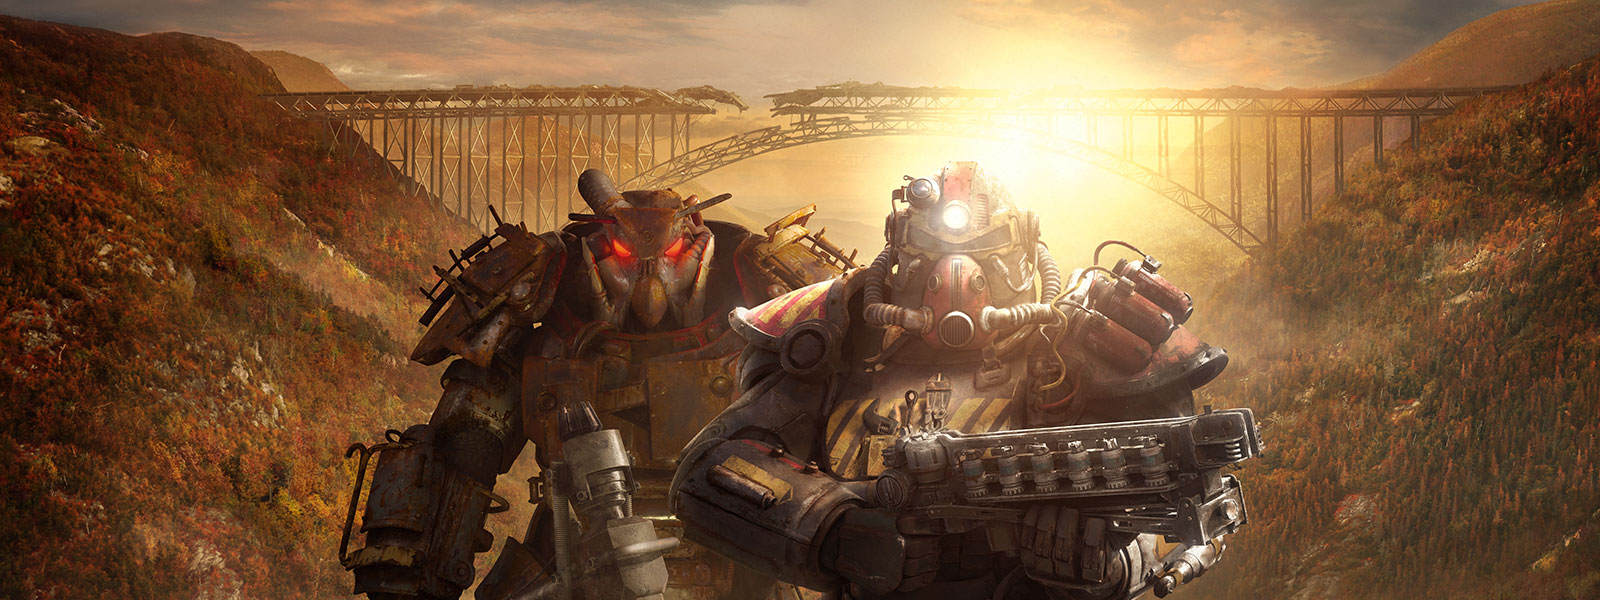 People in two sets of different Power Armour stand in front of dilapidated train tracks connecting two hills